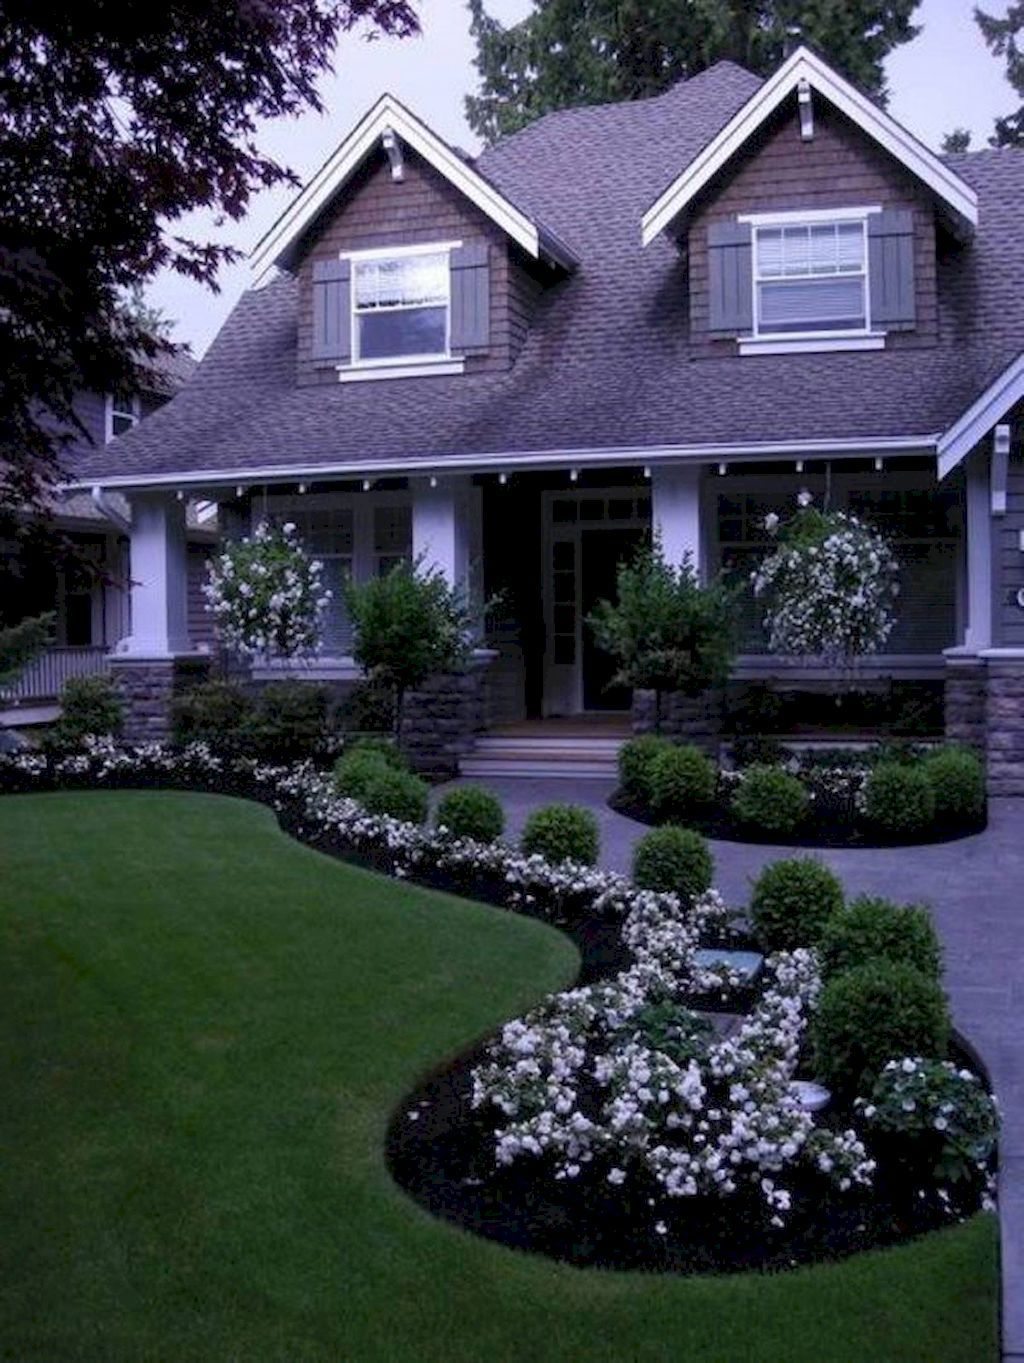 40 beautiful front yard landscaping ideas yard for Garden in front of house